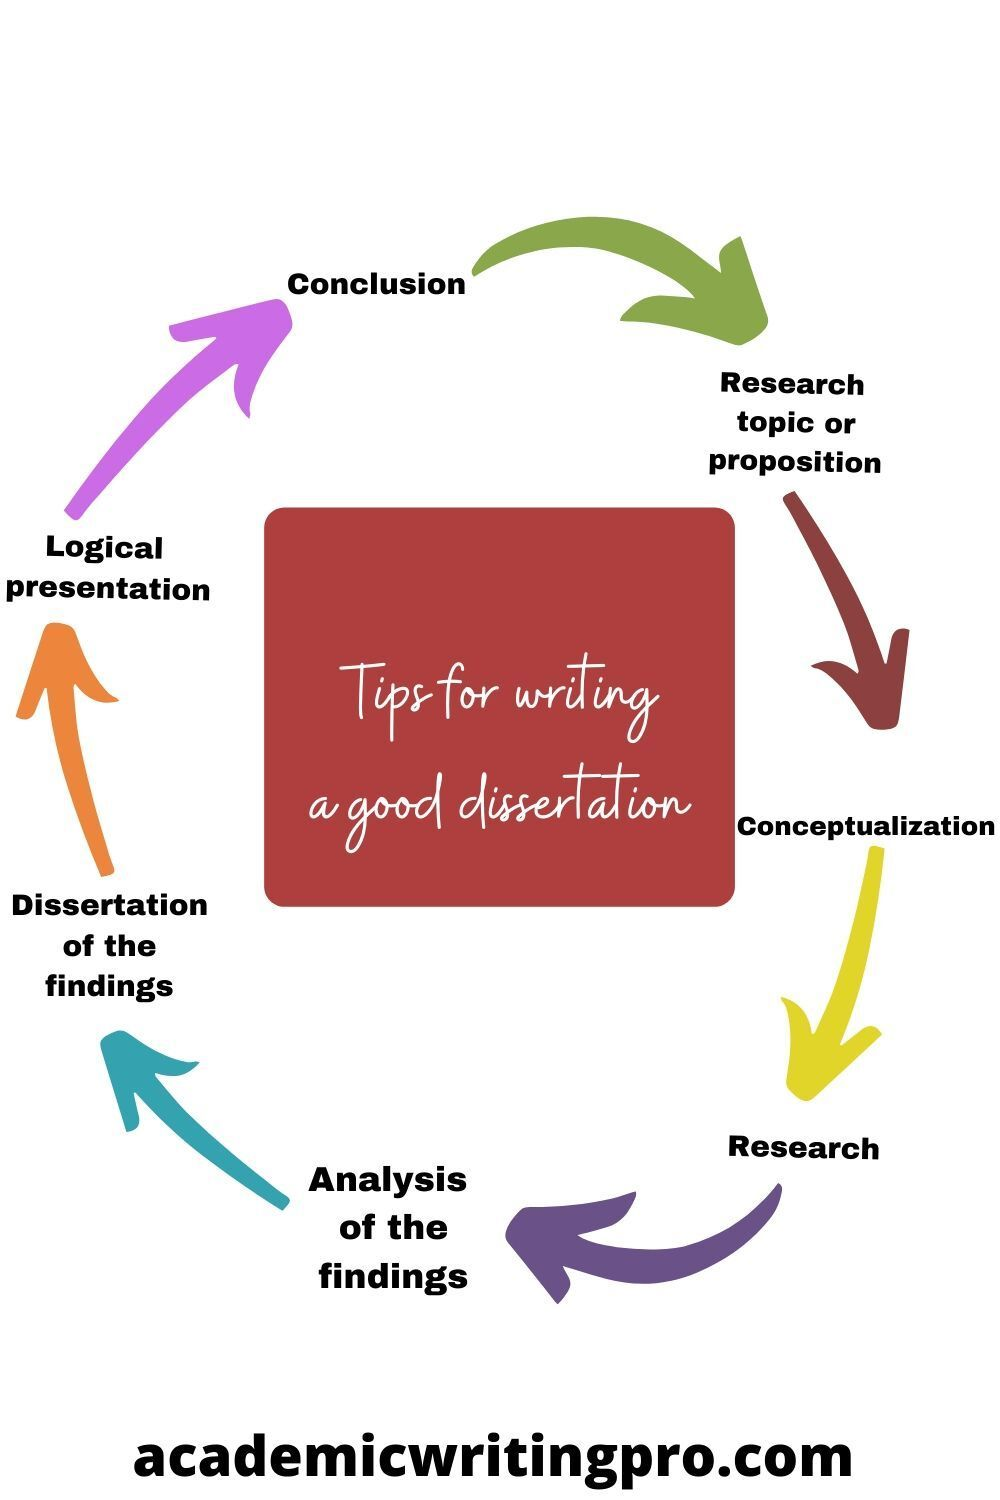 Dissertation Writing Require Planning And Research Skill If You Are Looking For Some Dissert Service Finding Analysis